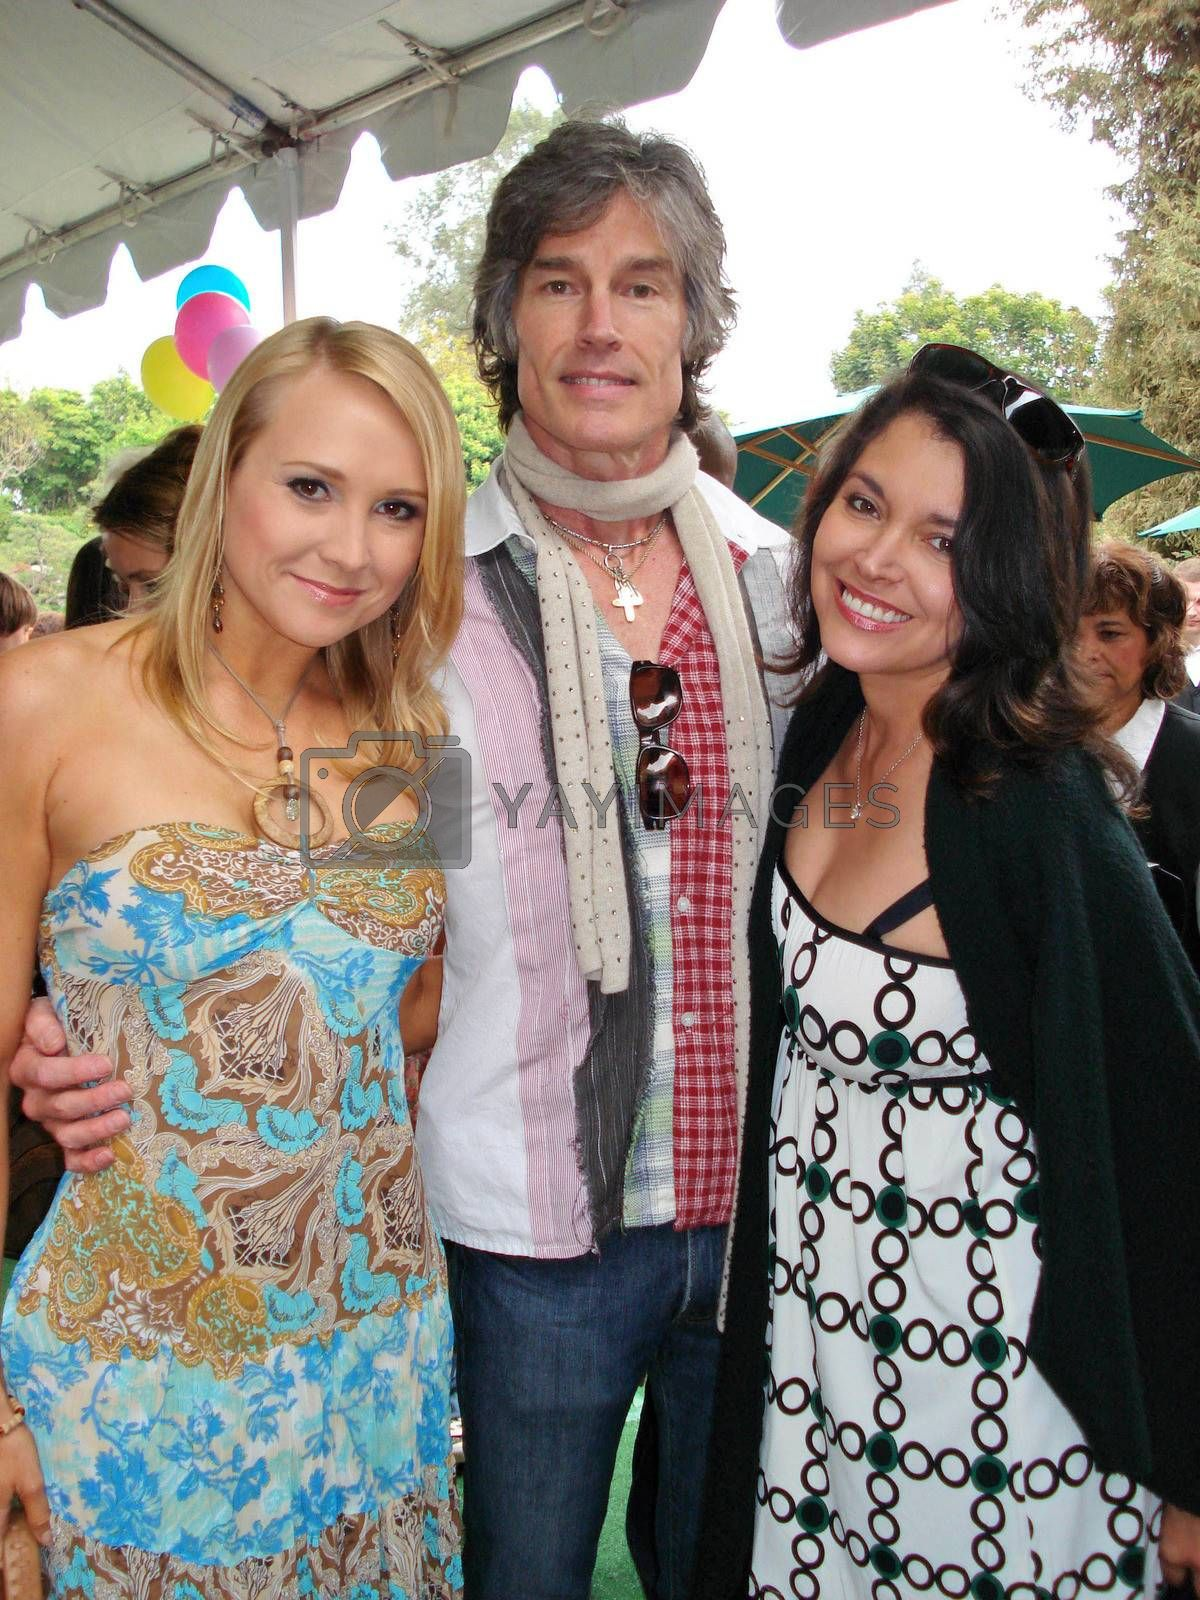 Alana Curry with Ronn Moss and Devin DeVasquez at the Playboy Mansion Easter Egg Hunt. Playboy Mansion, Los Angeles, CA. 04-07-07